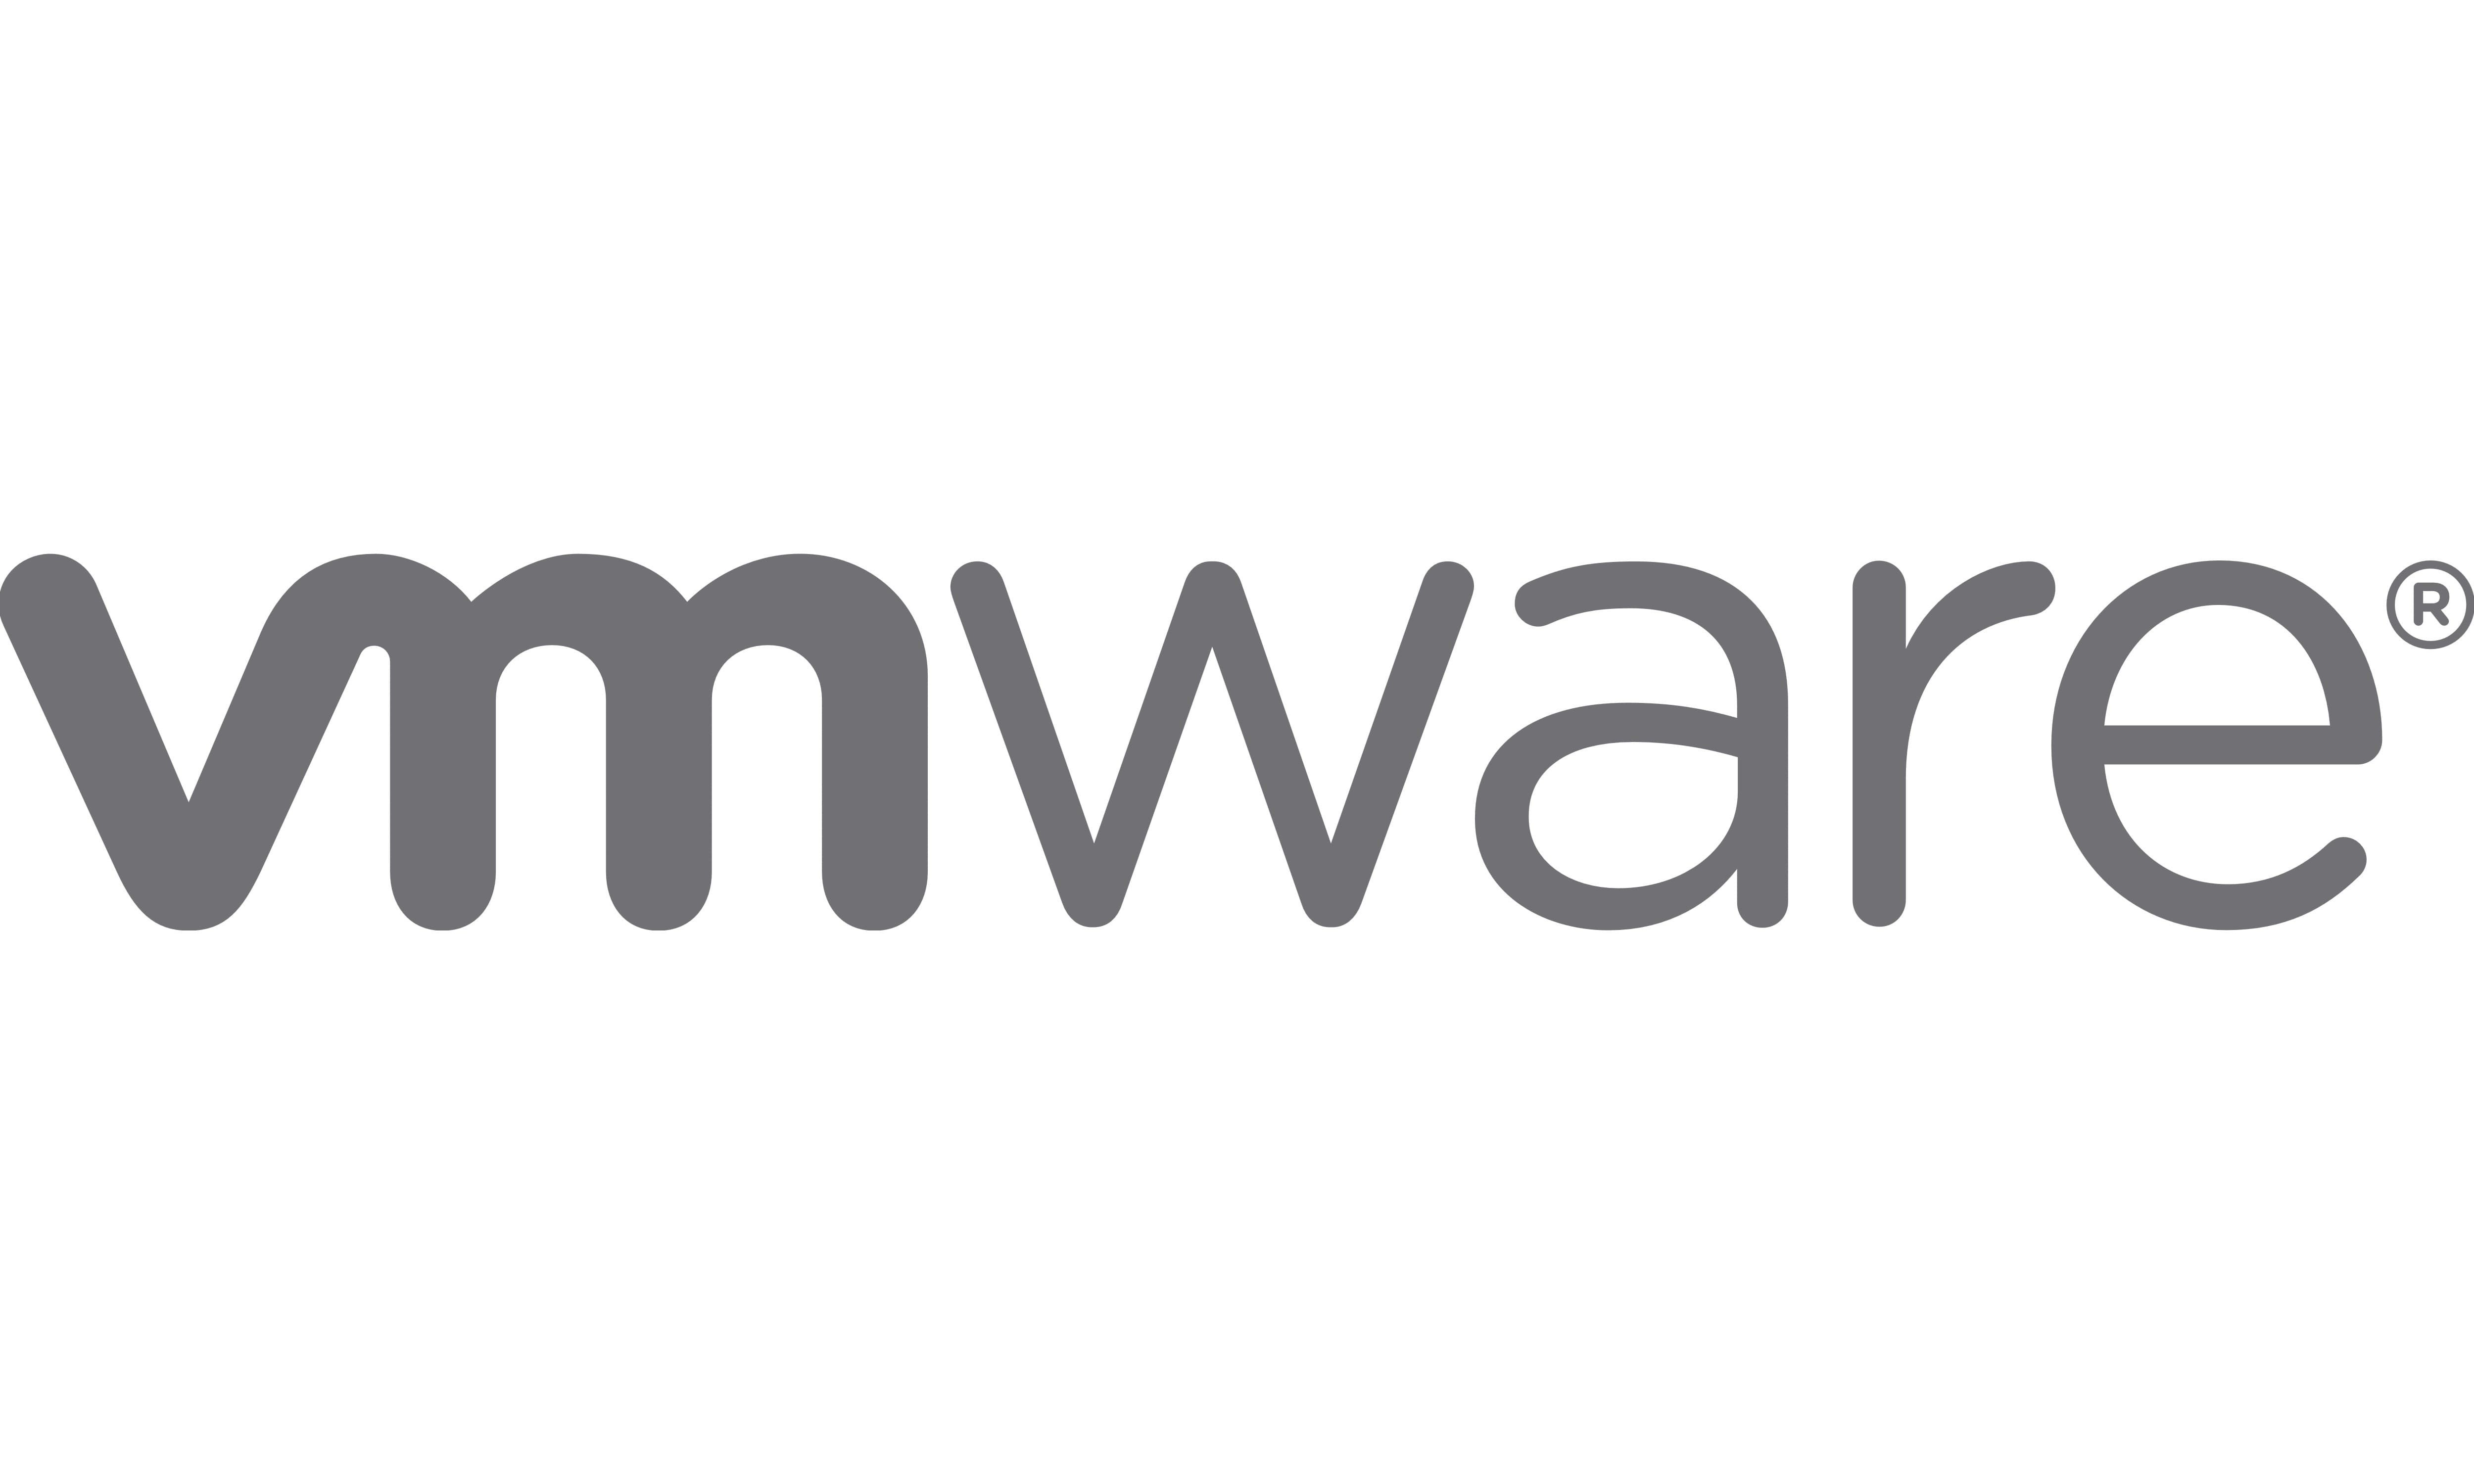 VMware Logo | evolution history and meaning, PNG